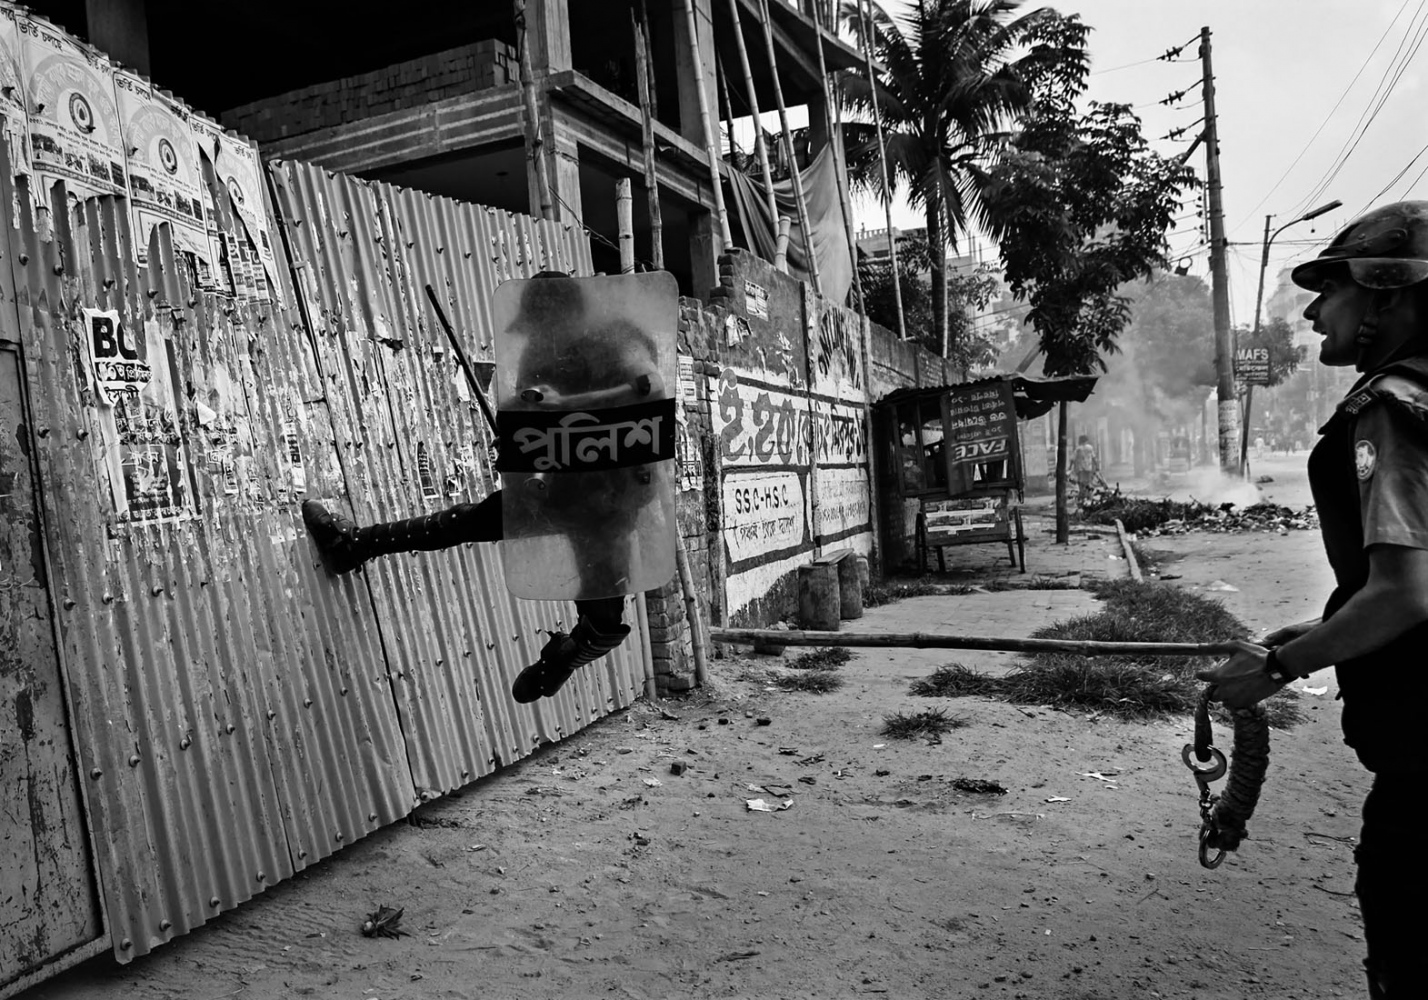 A policeman kicks the gate of a garment factory as they suspect protesters are hiding inside during a riot in Dhaka. Several hundreds of garment workers blocked the street and clashed with police demanding overtime wages and incremental increase of minimum wages to 5000 takas ($73), police said. The worker's current salary was less than 1,700 takas ($25) per month.